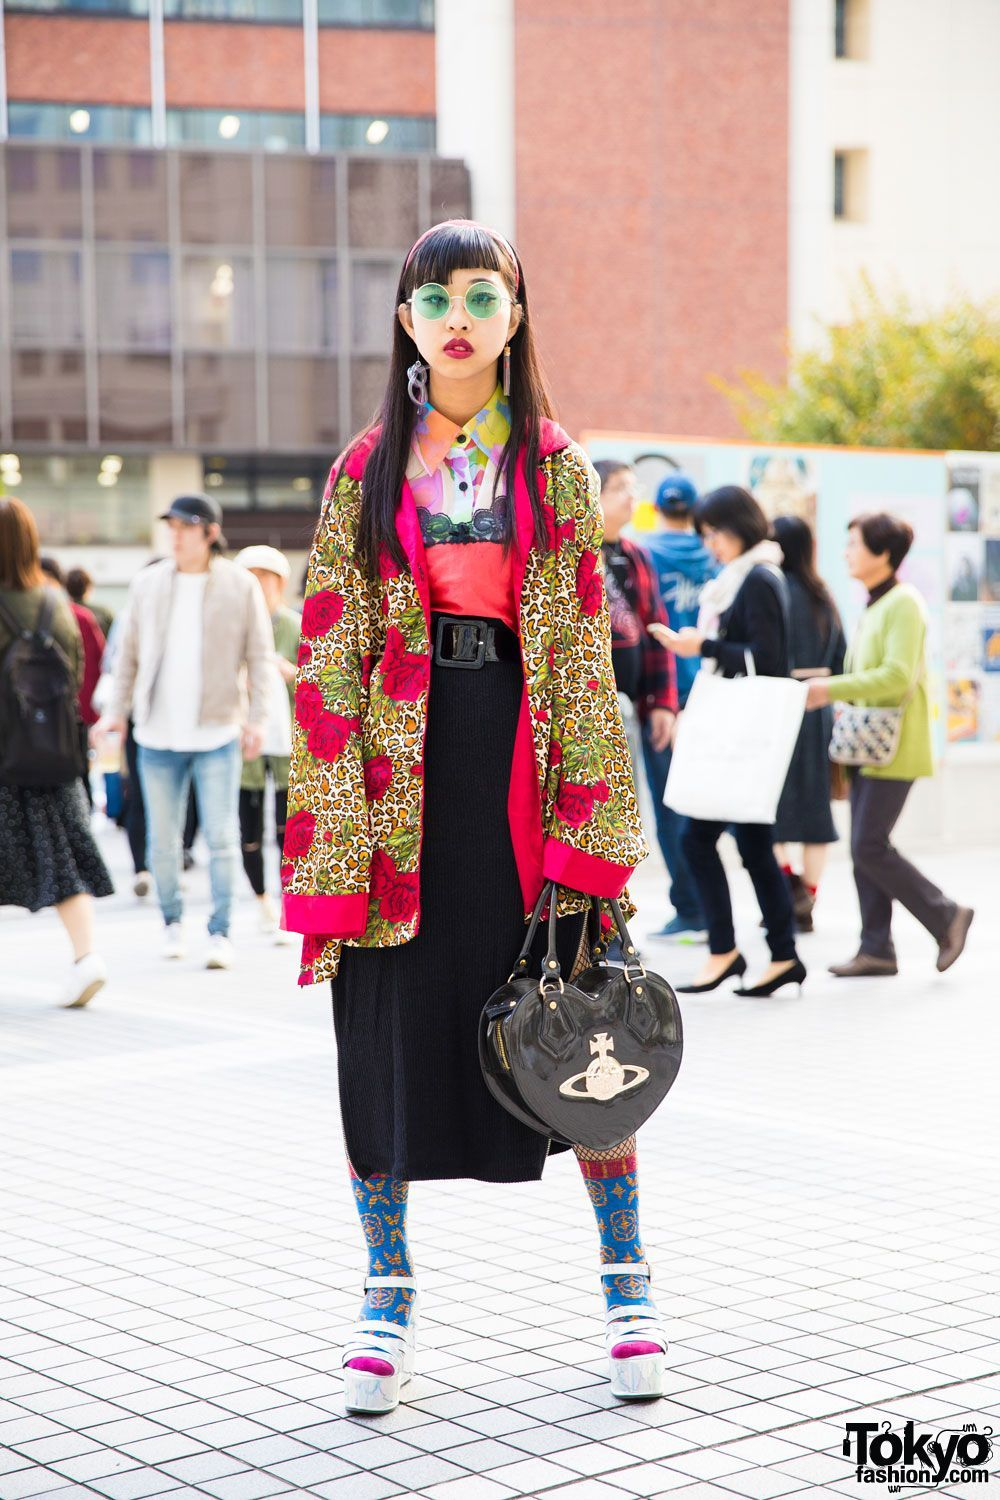 98f05a547a7 Roupas Femininas · Japanese Fashion Student in Vintage Mixed Prints Street  Style w  Bubbles Tokyo   Vivienne Westwood